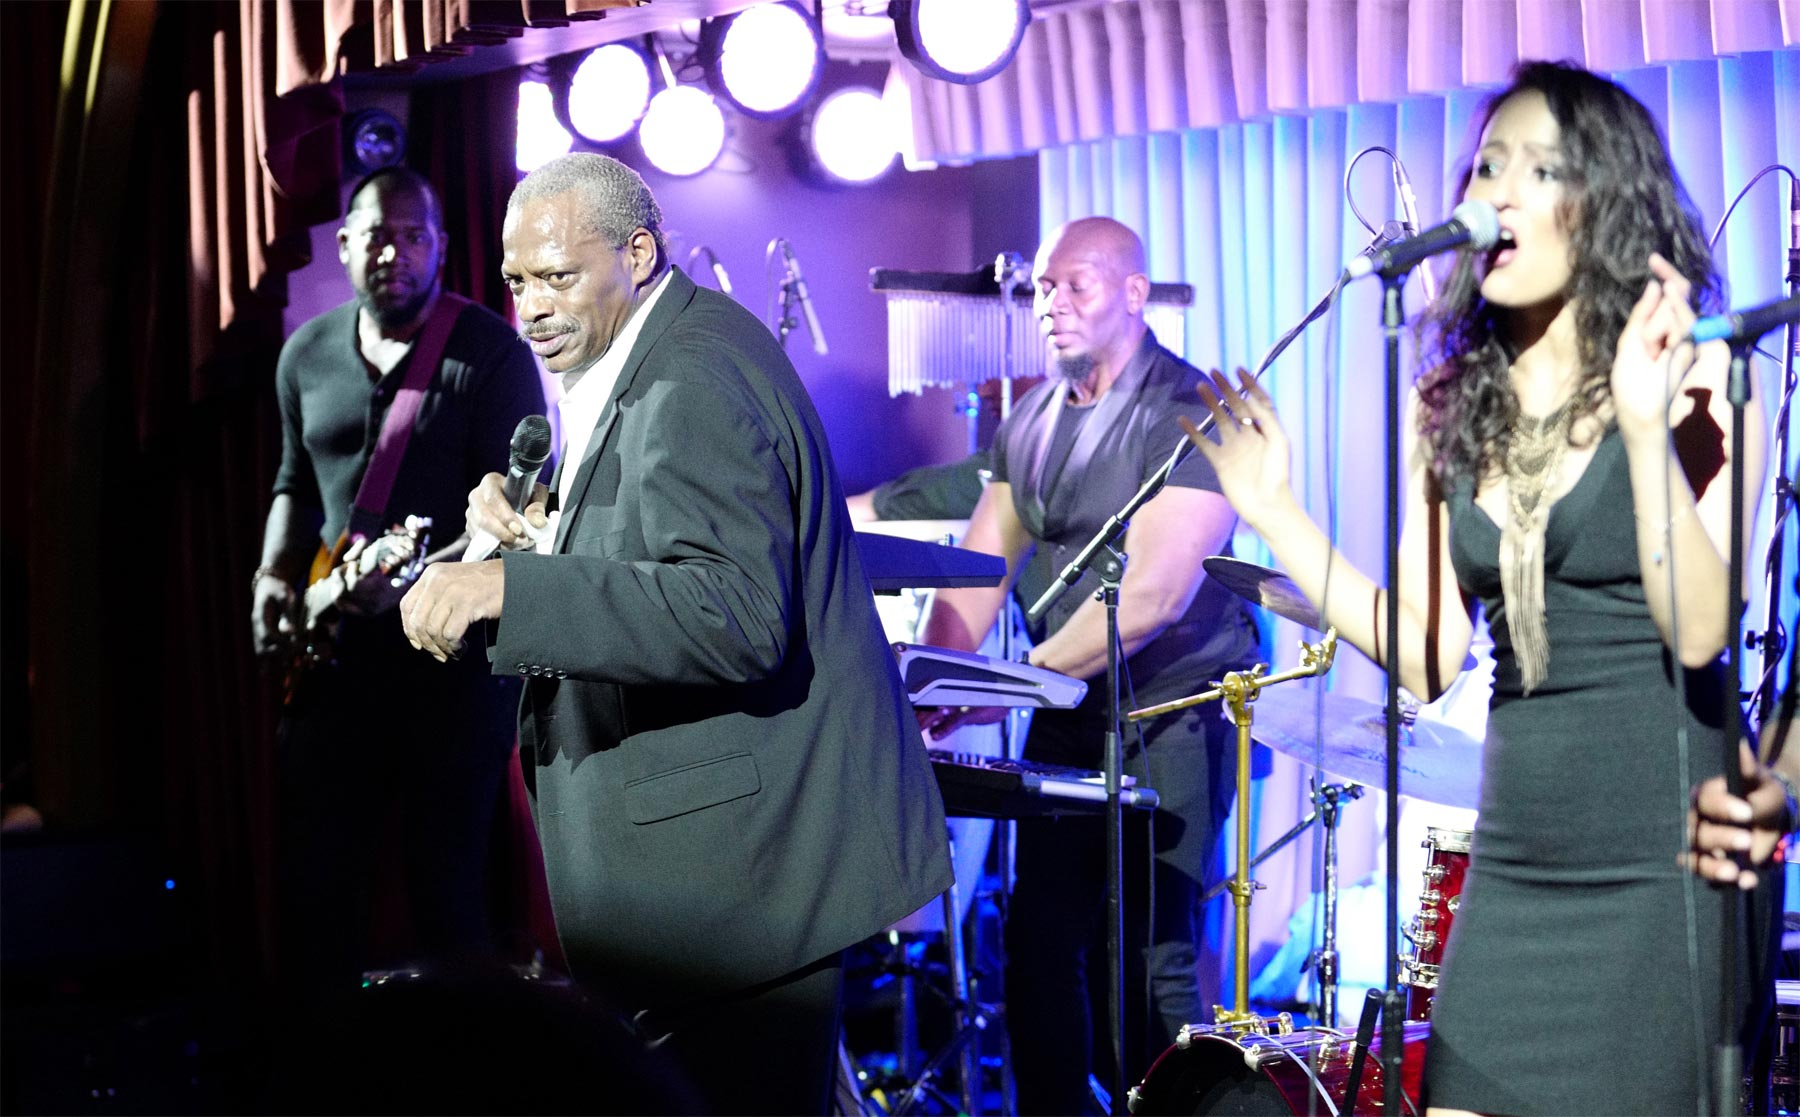 A Musical Masterclass by Alexander O'Neal at Quaglino's 8